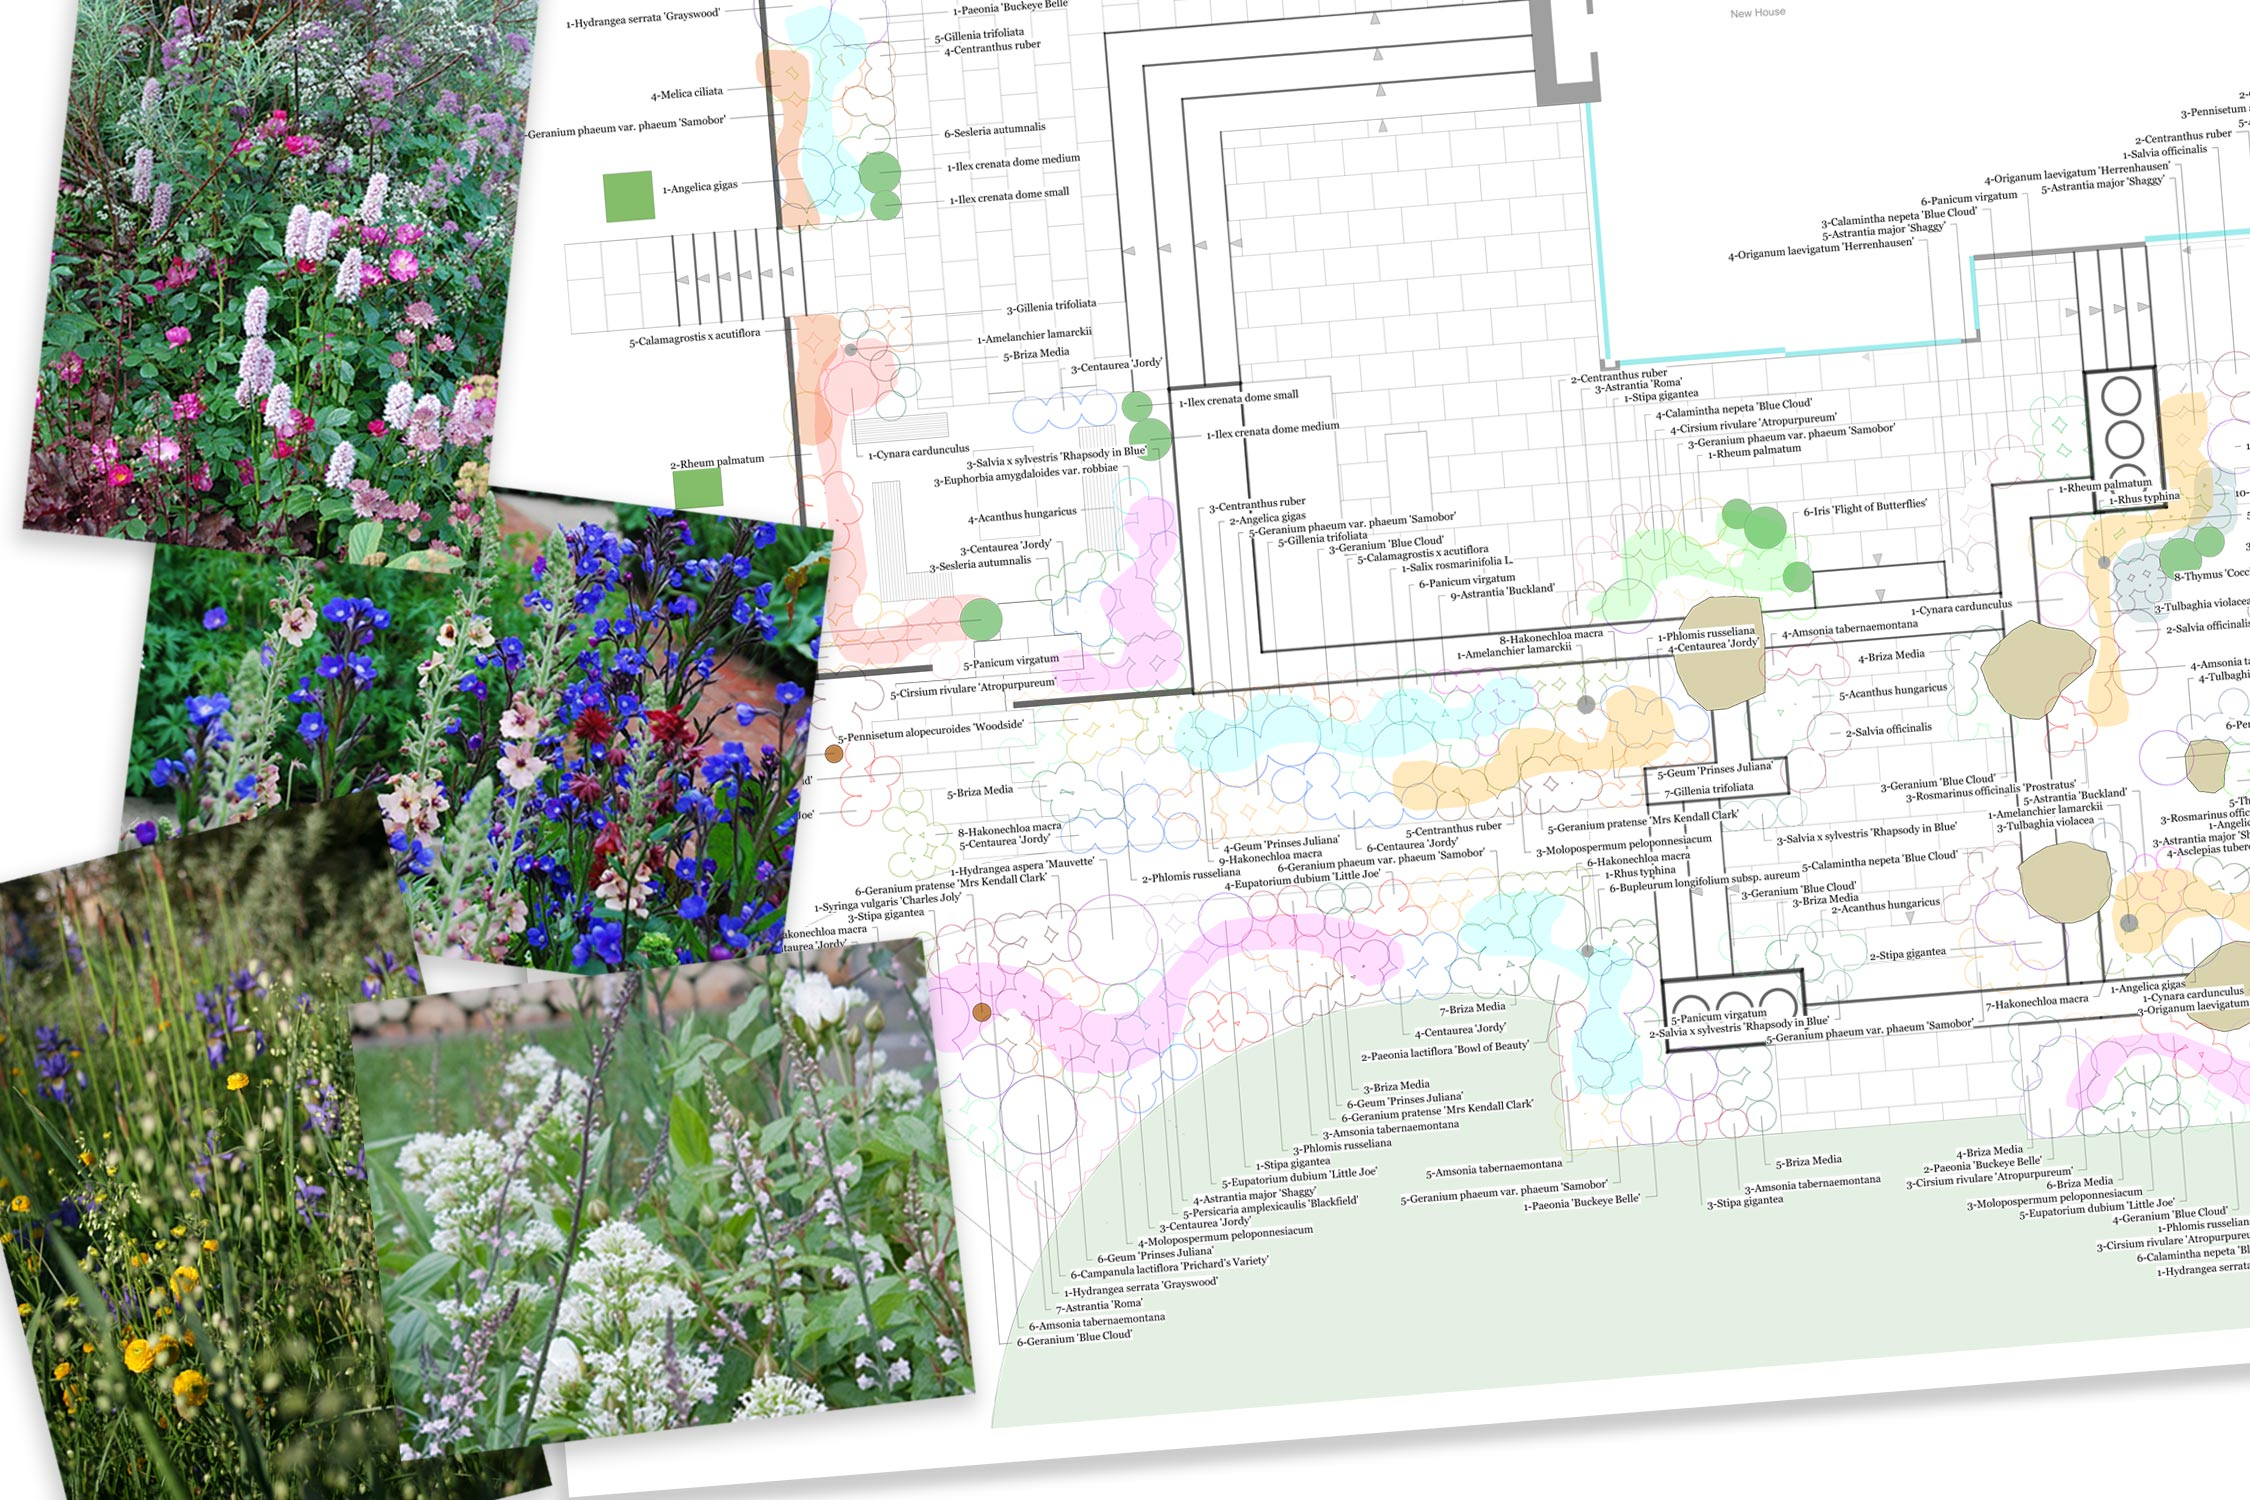 Planting plans created by Adam Frost and his Team